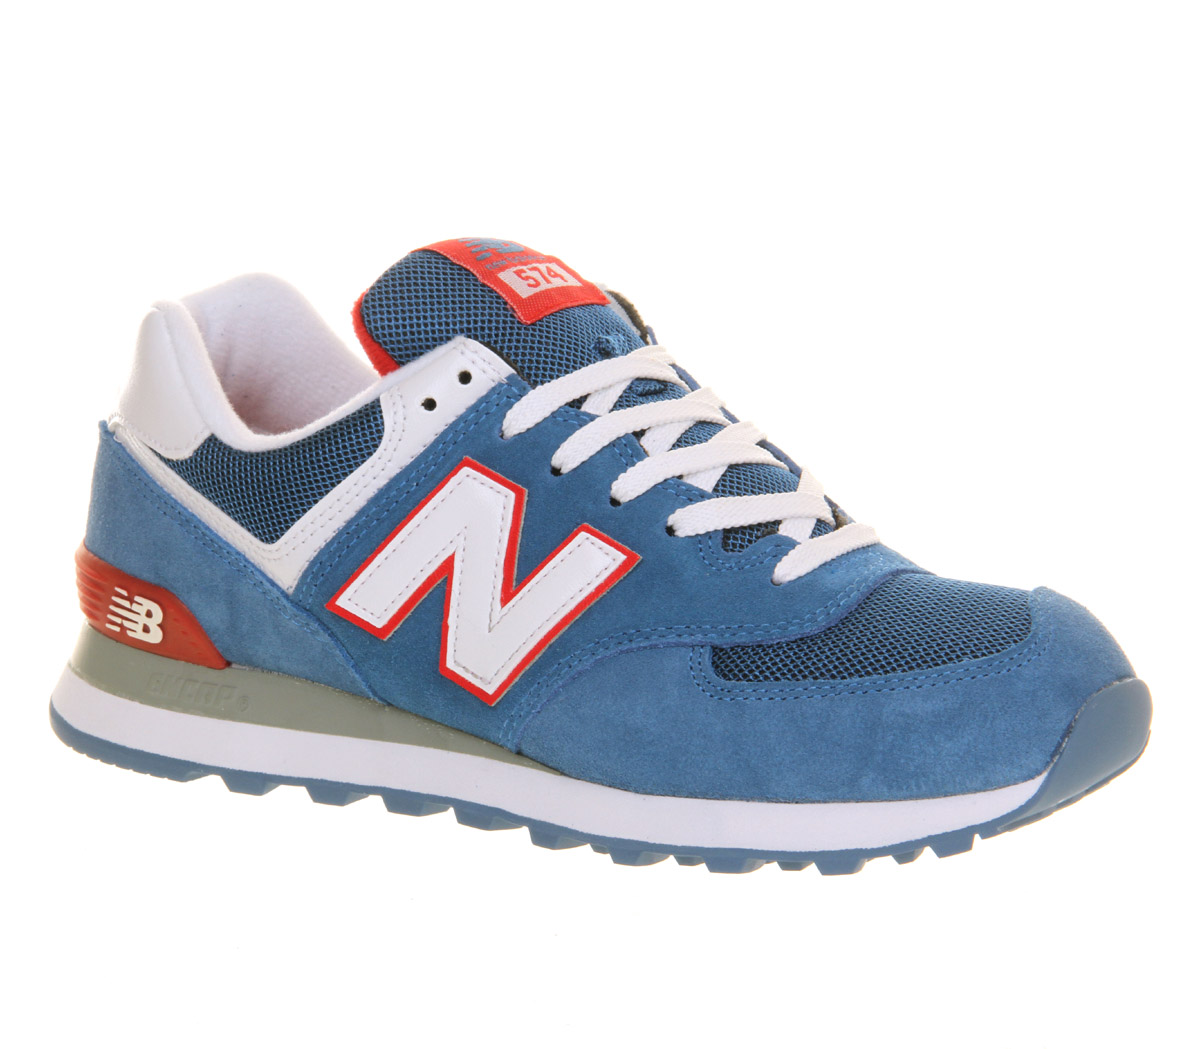 New-Balance-New-Balance-M574-BLUE-RED-WHITE-Trainers-Shoes